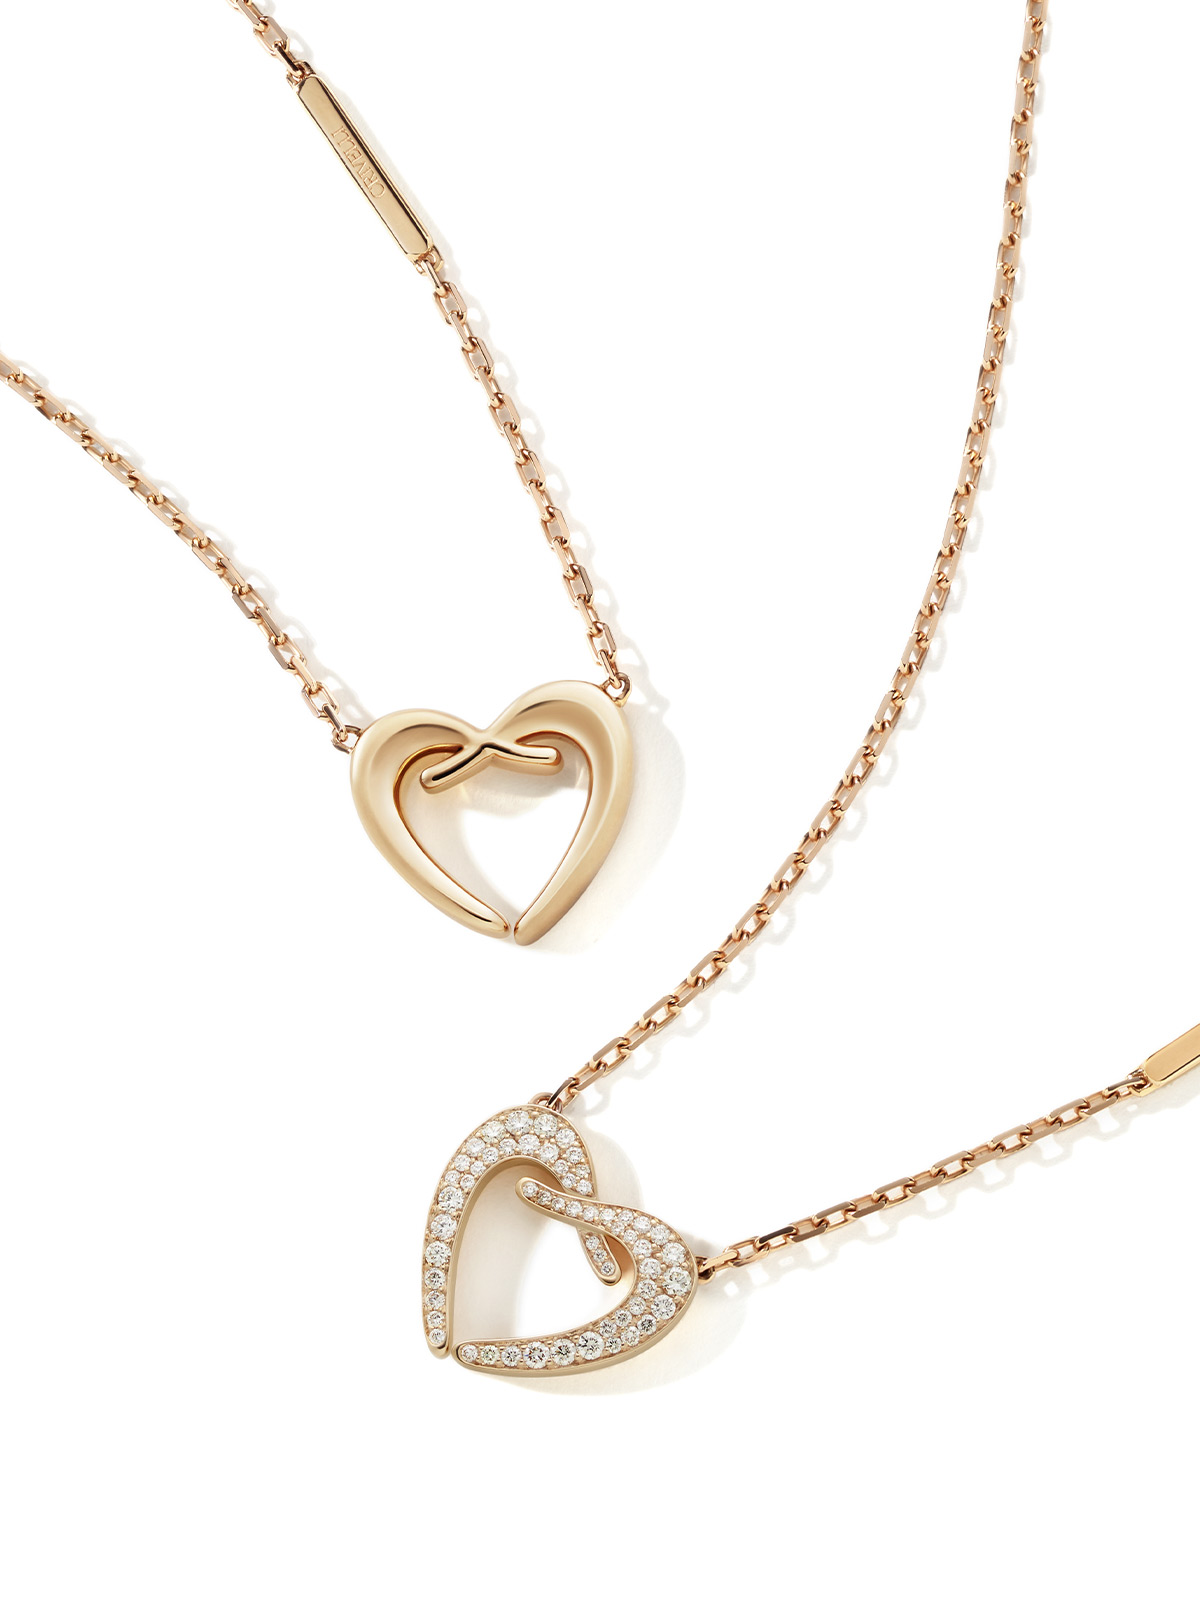 INCONTRO necklace Pink gold heart shaped necklace with diamond pave | INFINITO necklace ORA PIÙ CHE MAI Crivelli - pink gold and diamonds